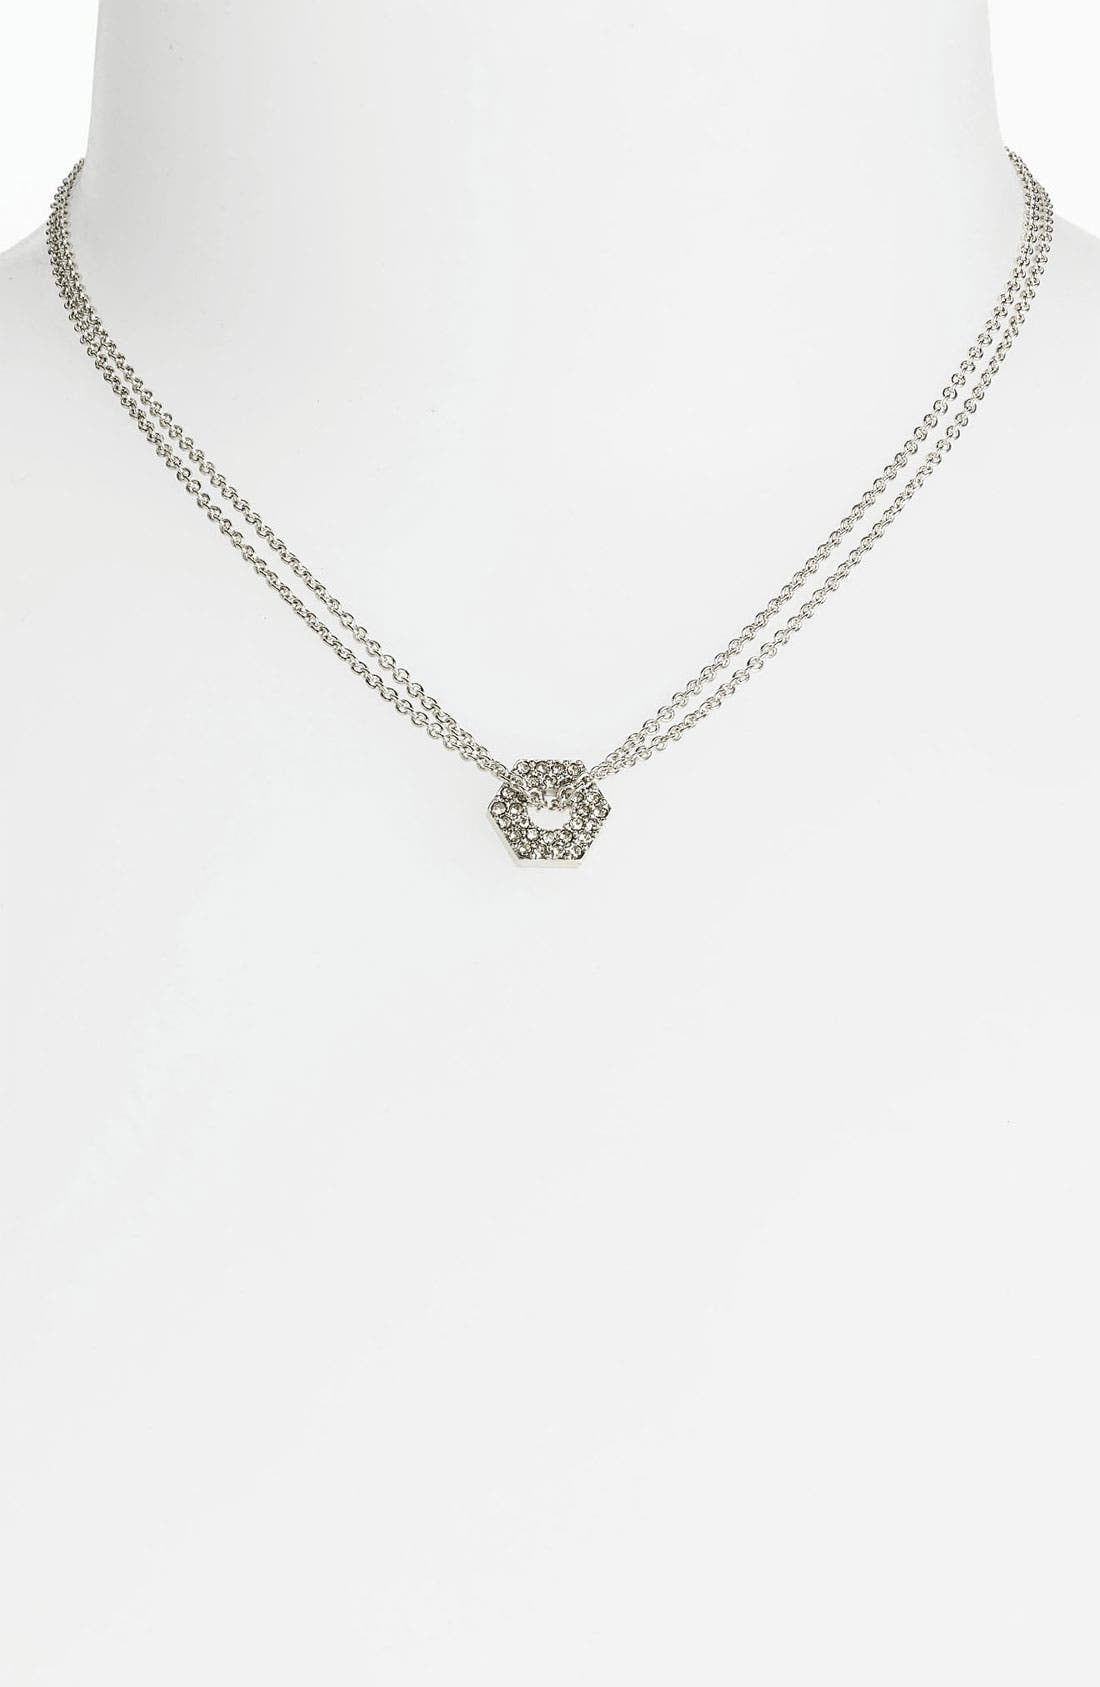 Alternate Image 1 Selected - MARC BY MARC JACOBS 'Bolts' Pavé Pendant Necklace